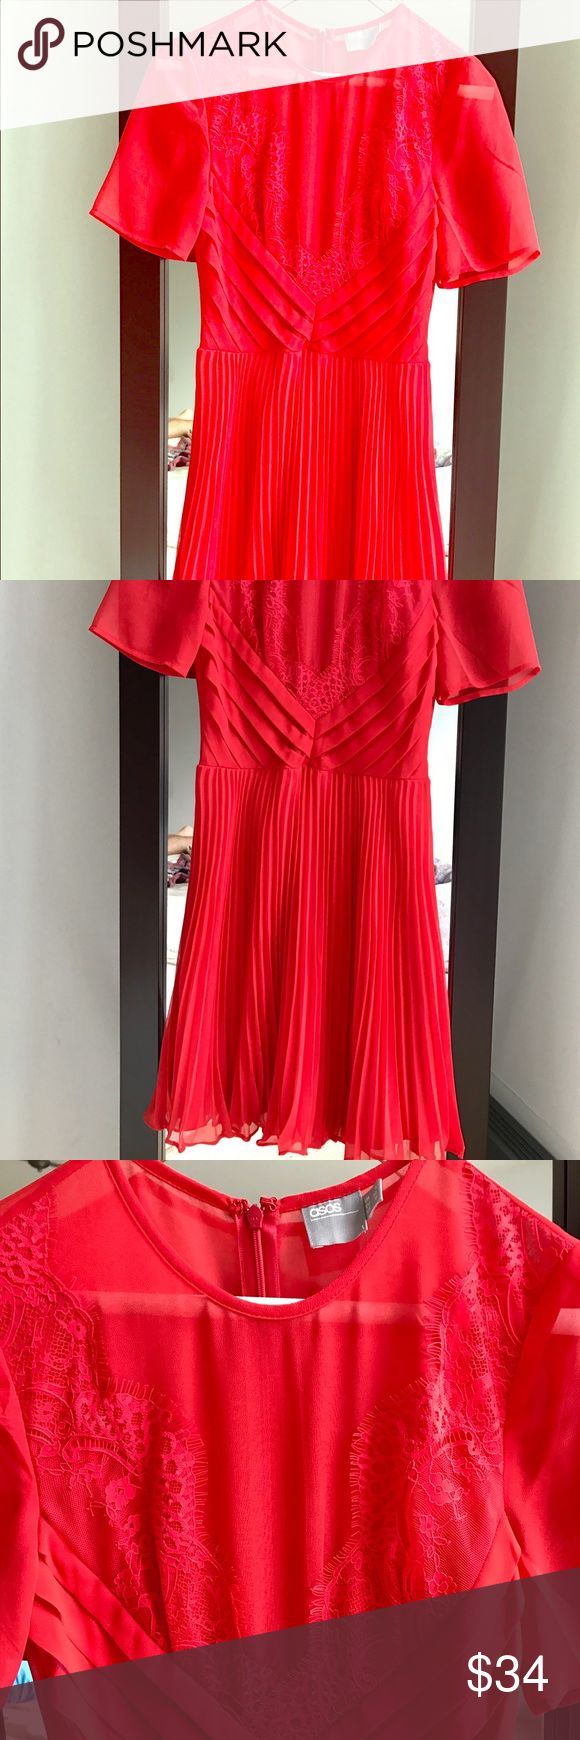 """Lace and Pleat skater mini red dress. ASOS Petite Super glam red dress with laces details. ASOS Petite size US 0. For girl 5"""" tall this dress lands above the knees with a nice fluffy effect. New, never worn. ASOS Petite Dresses Midi"""